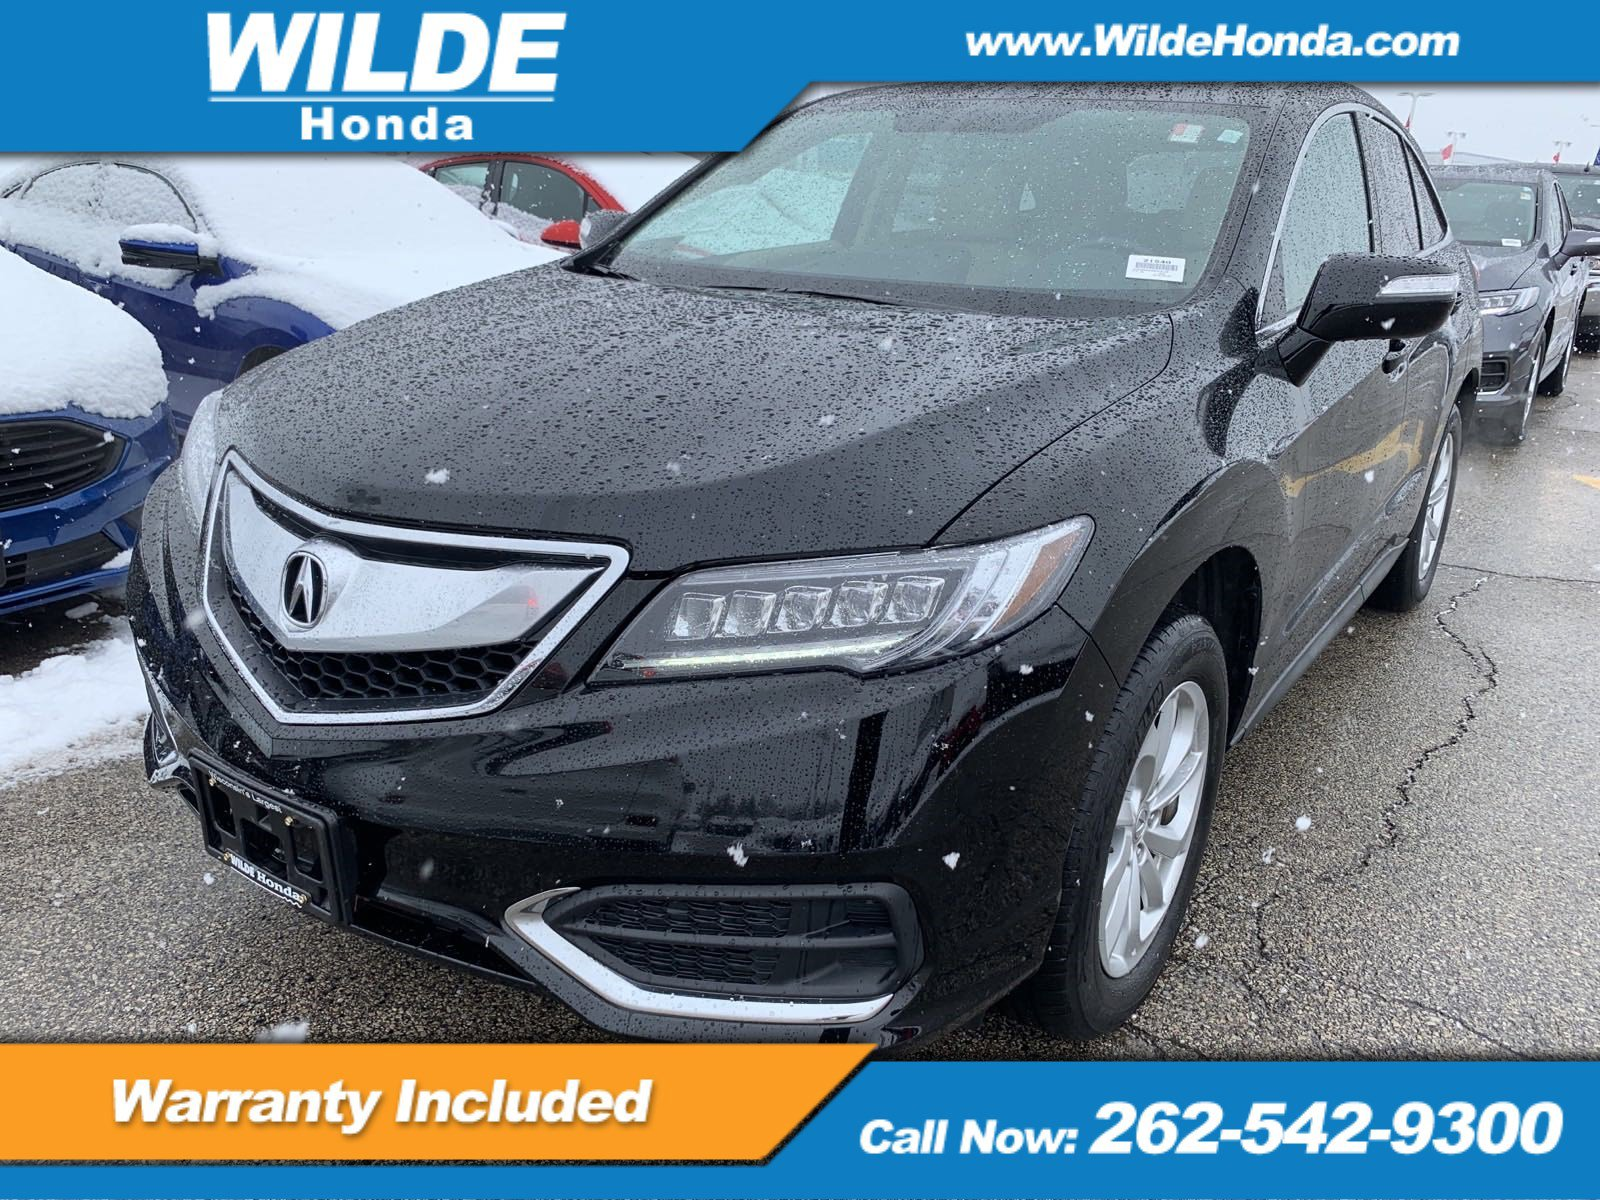 2017 Acura RDX AWD w/ Technology Package image